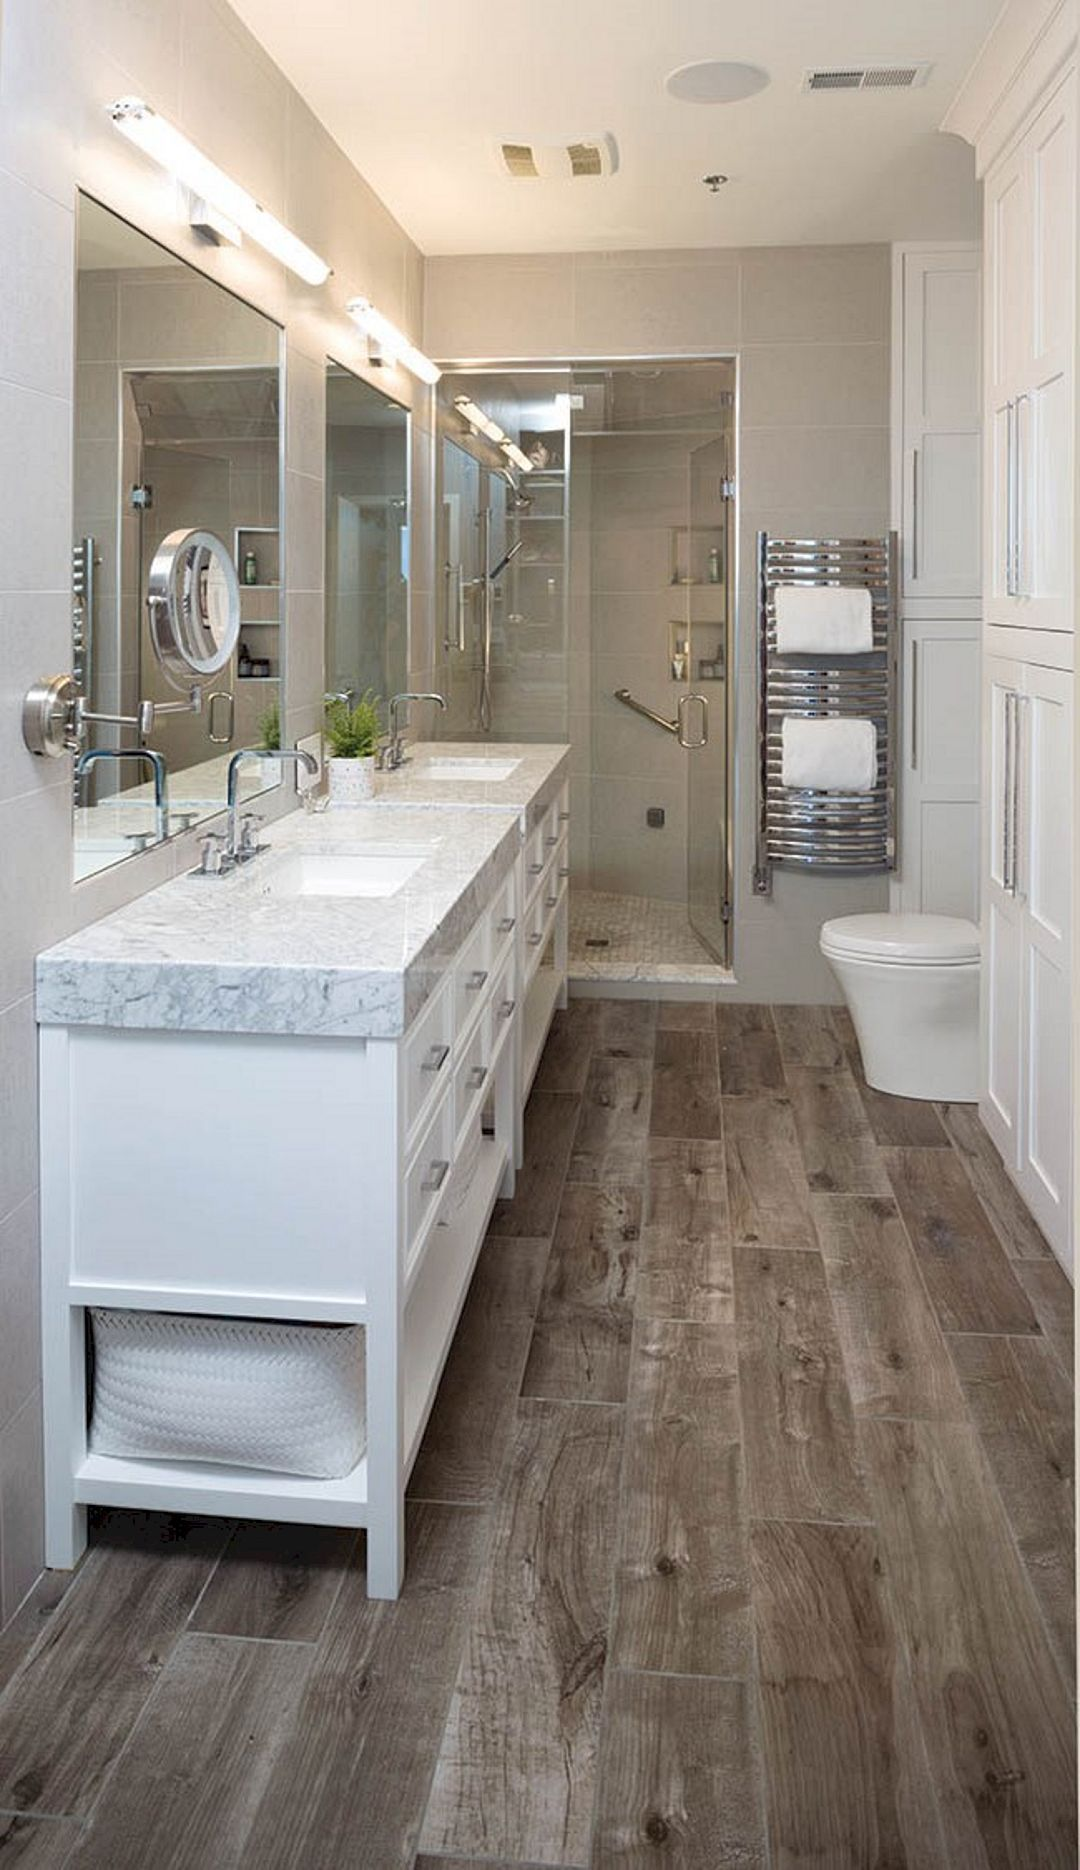 The Best Diy Master Bathroom Ideas Remodel On A Budget No